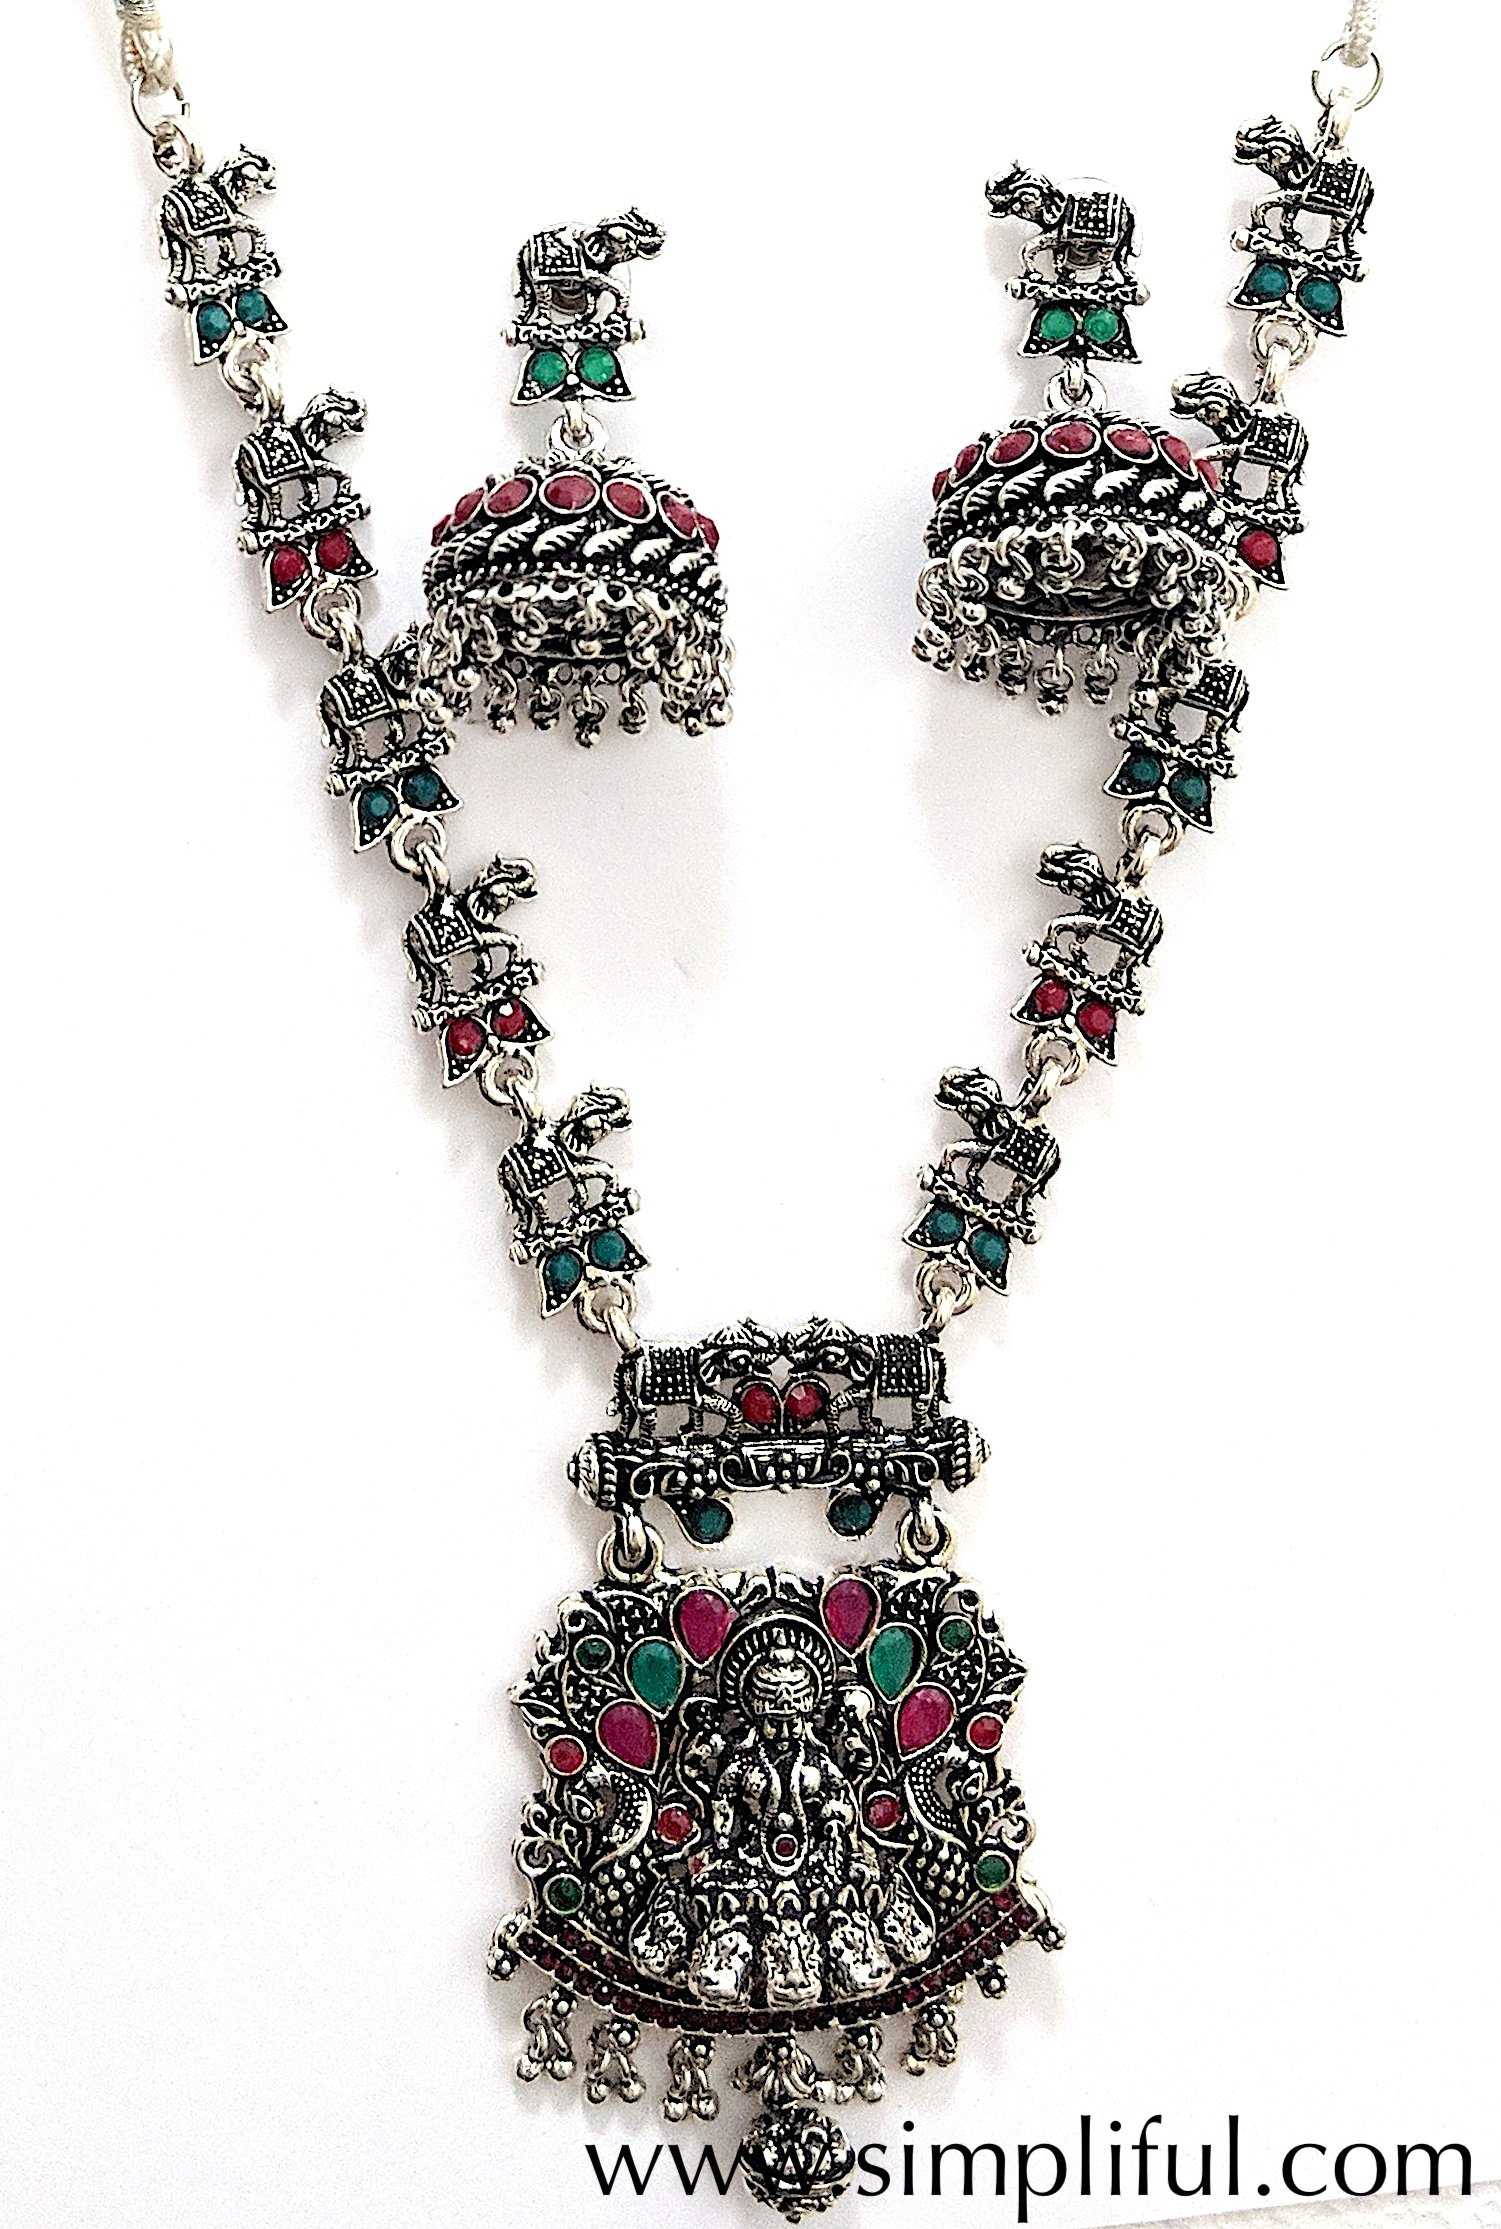 Oxidized goddess lakshmi pendant with elephant chain necklace and